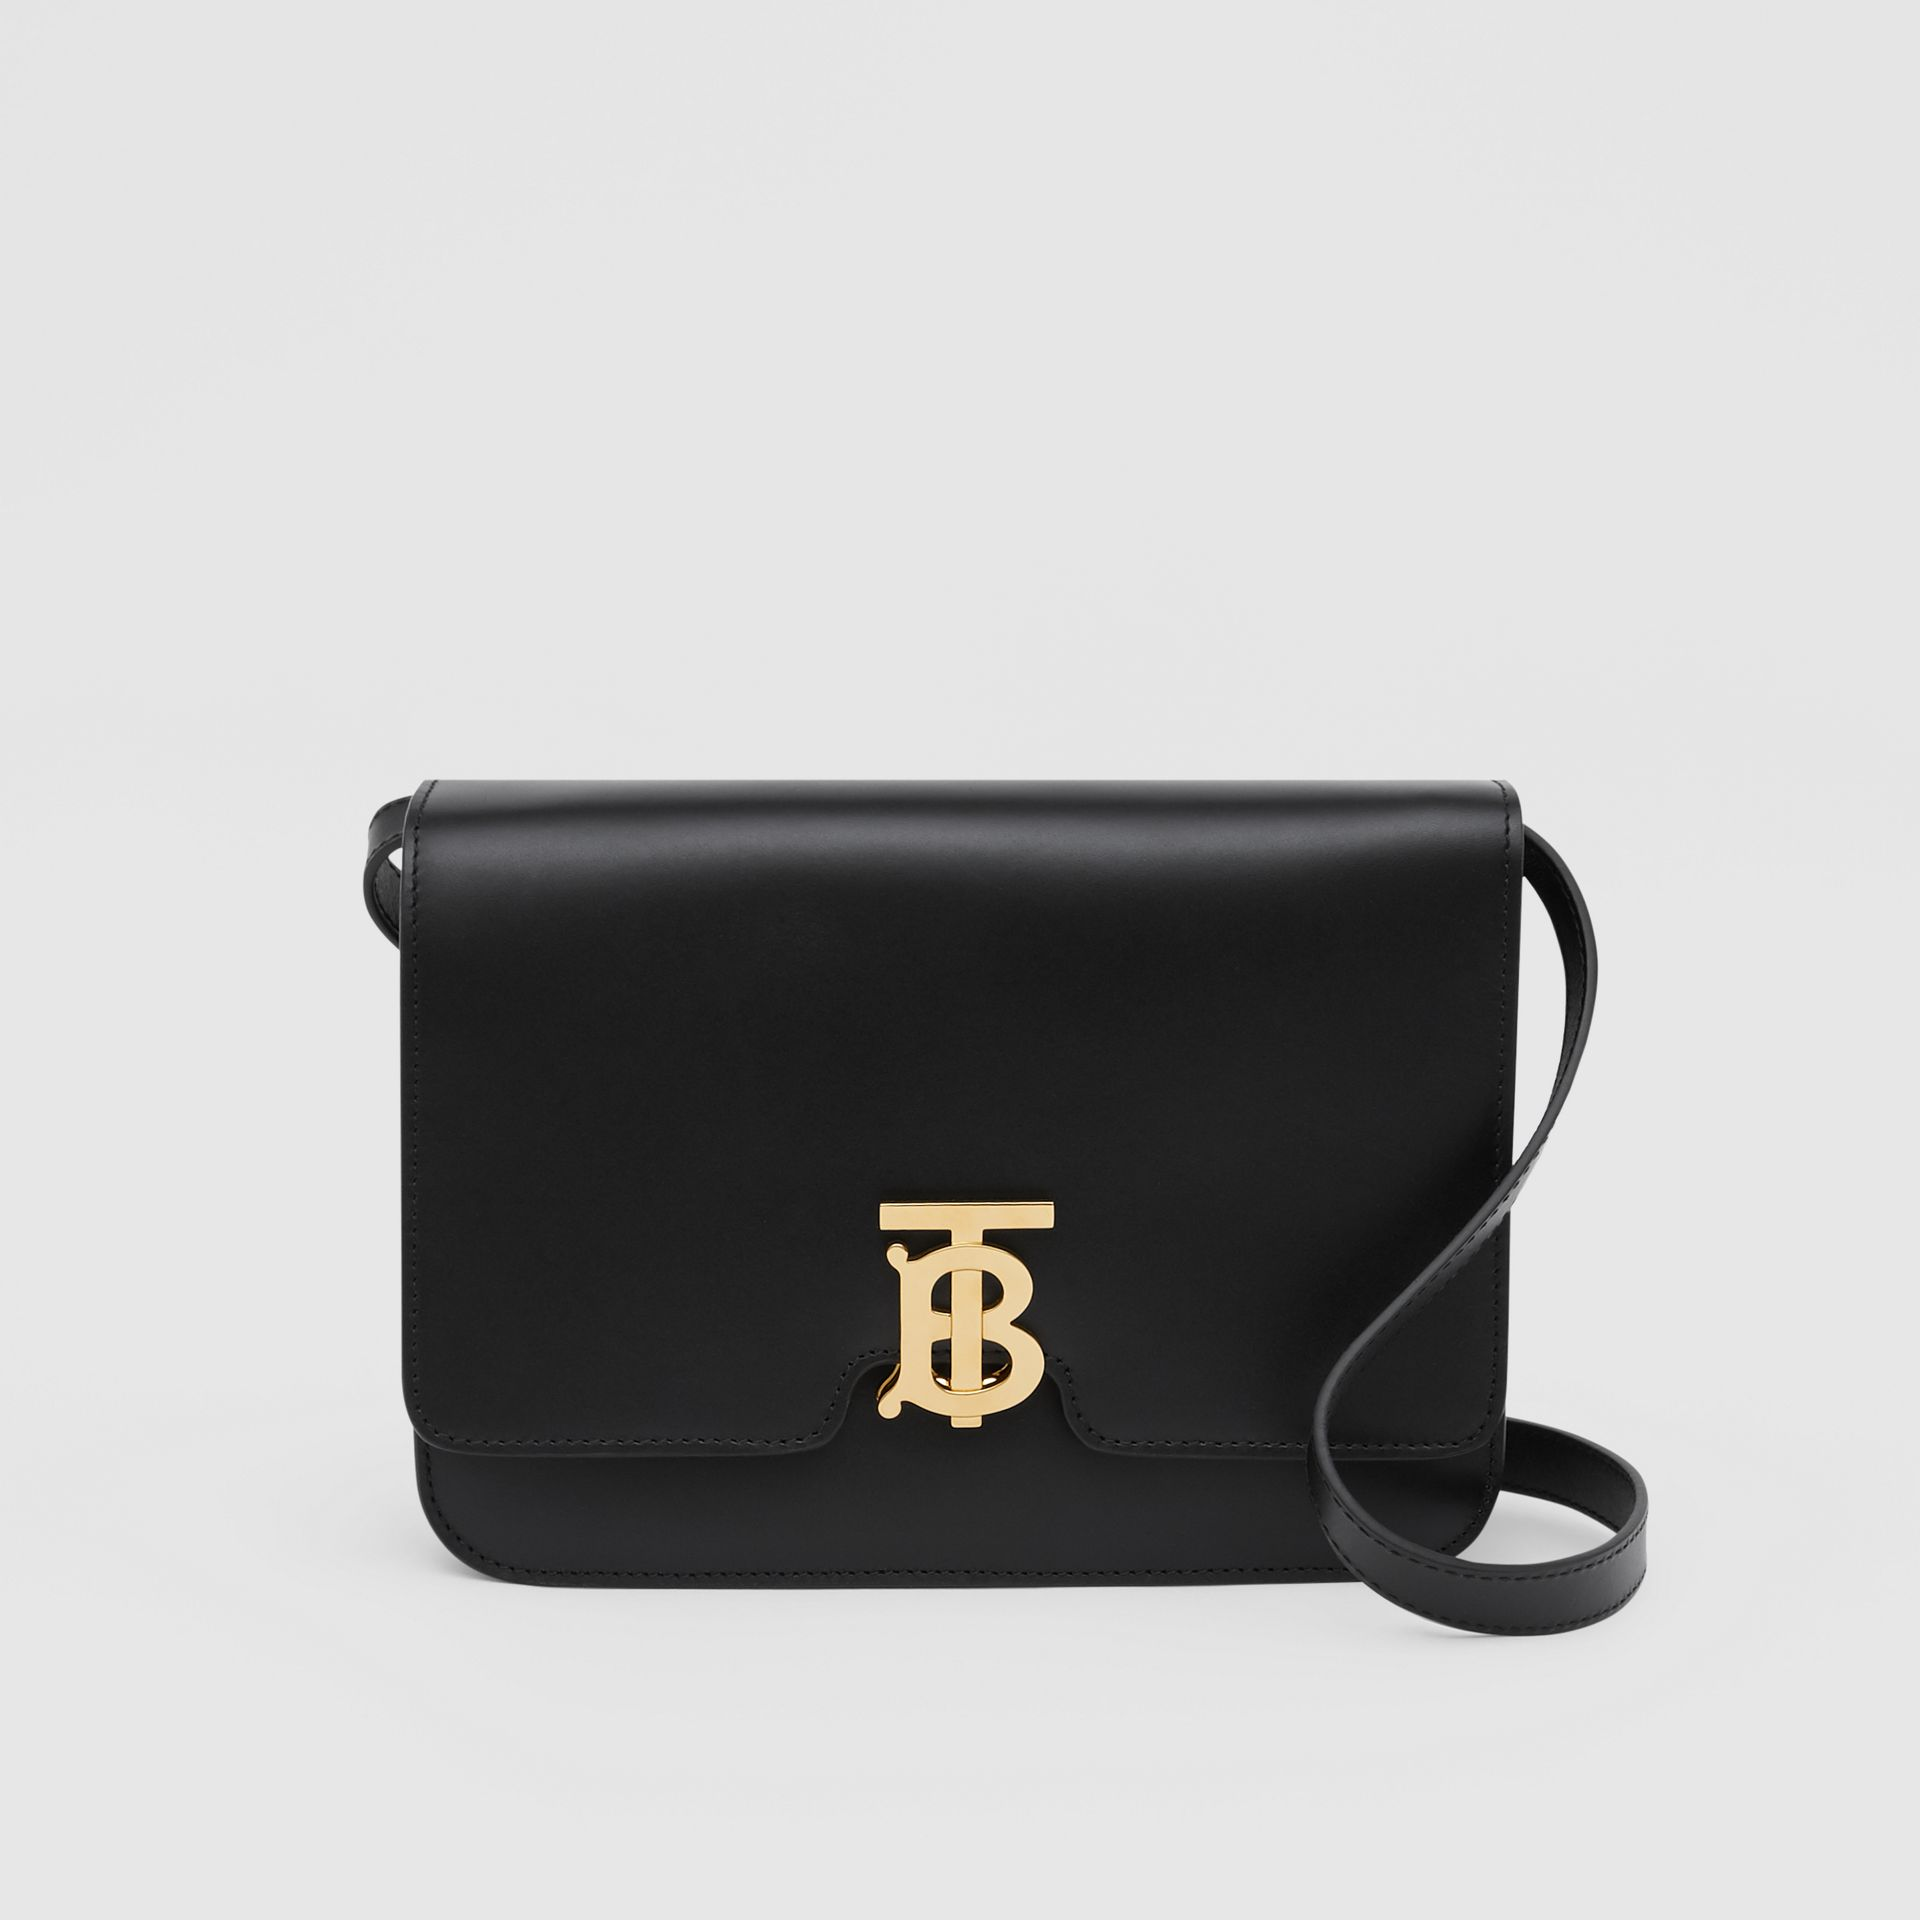 Medium Leather TB Bag in Black - Women | Burberry Canada - gallery image 0